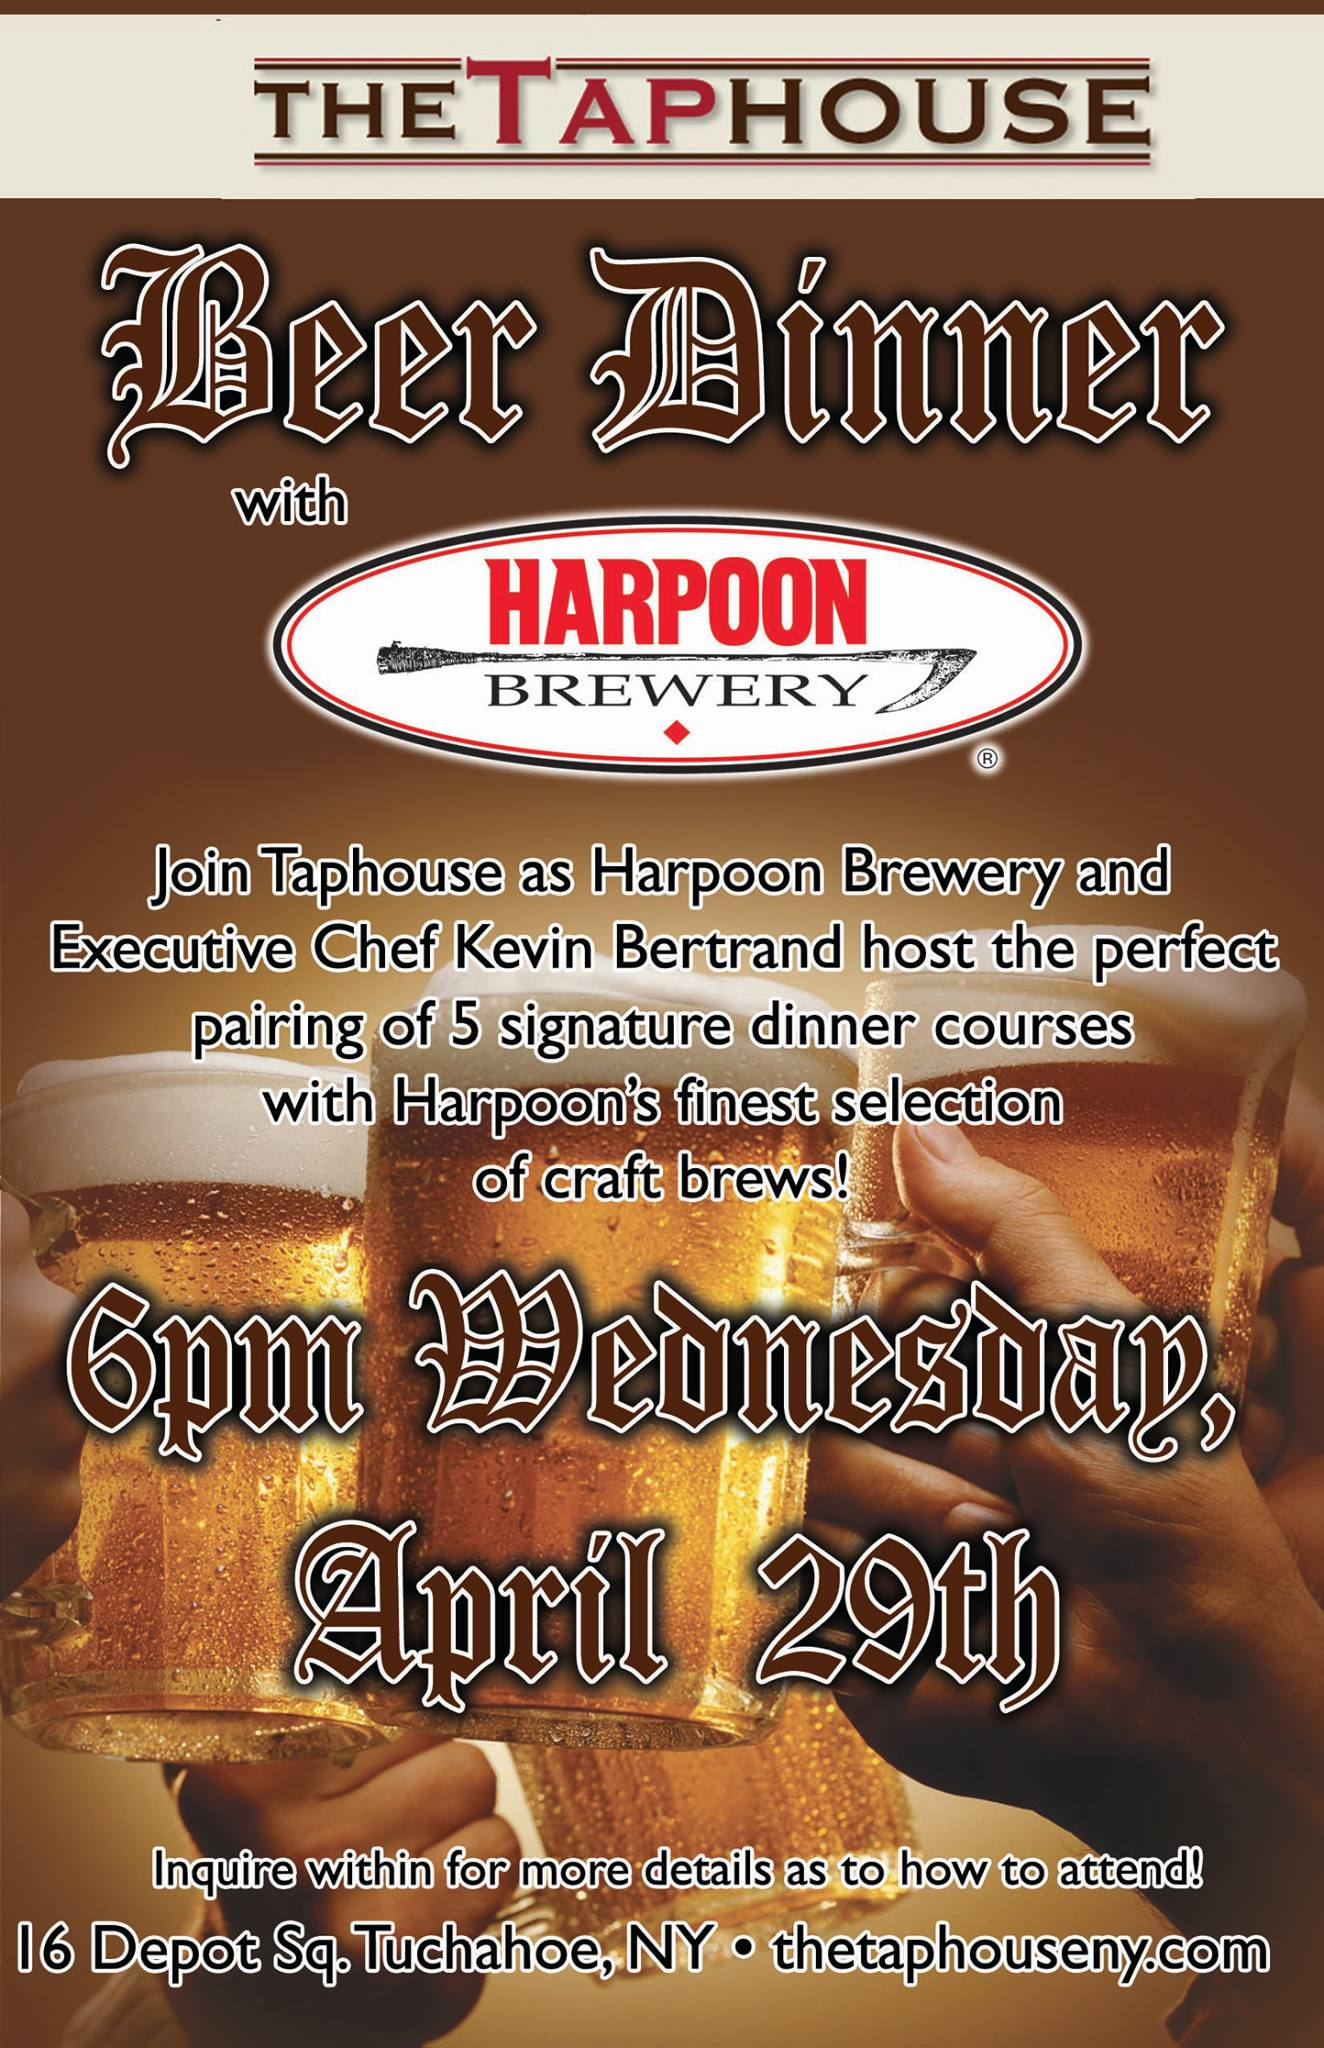 The Tap House Harpoon Brewery Beer Dinner